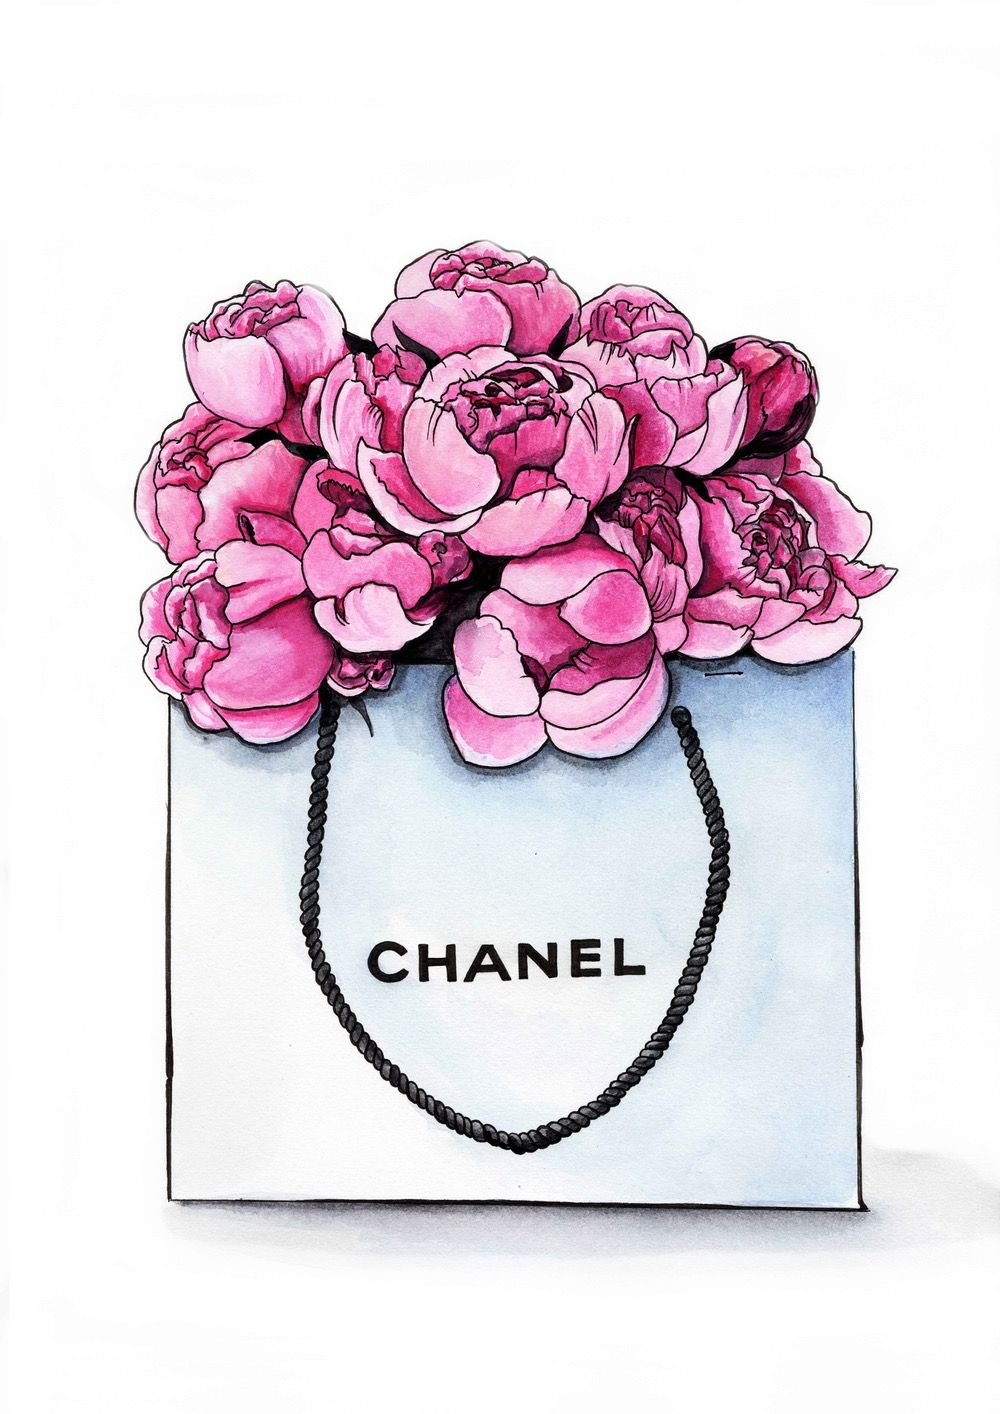 Image Of Chanel Peonies 画像あり Chanel アート 壁紙 デザインスタイル